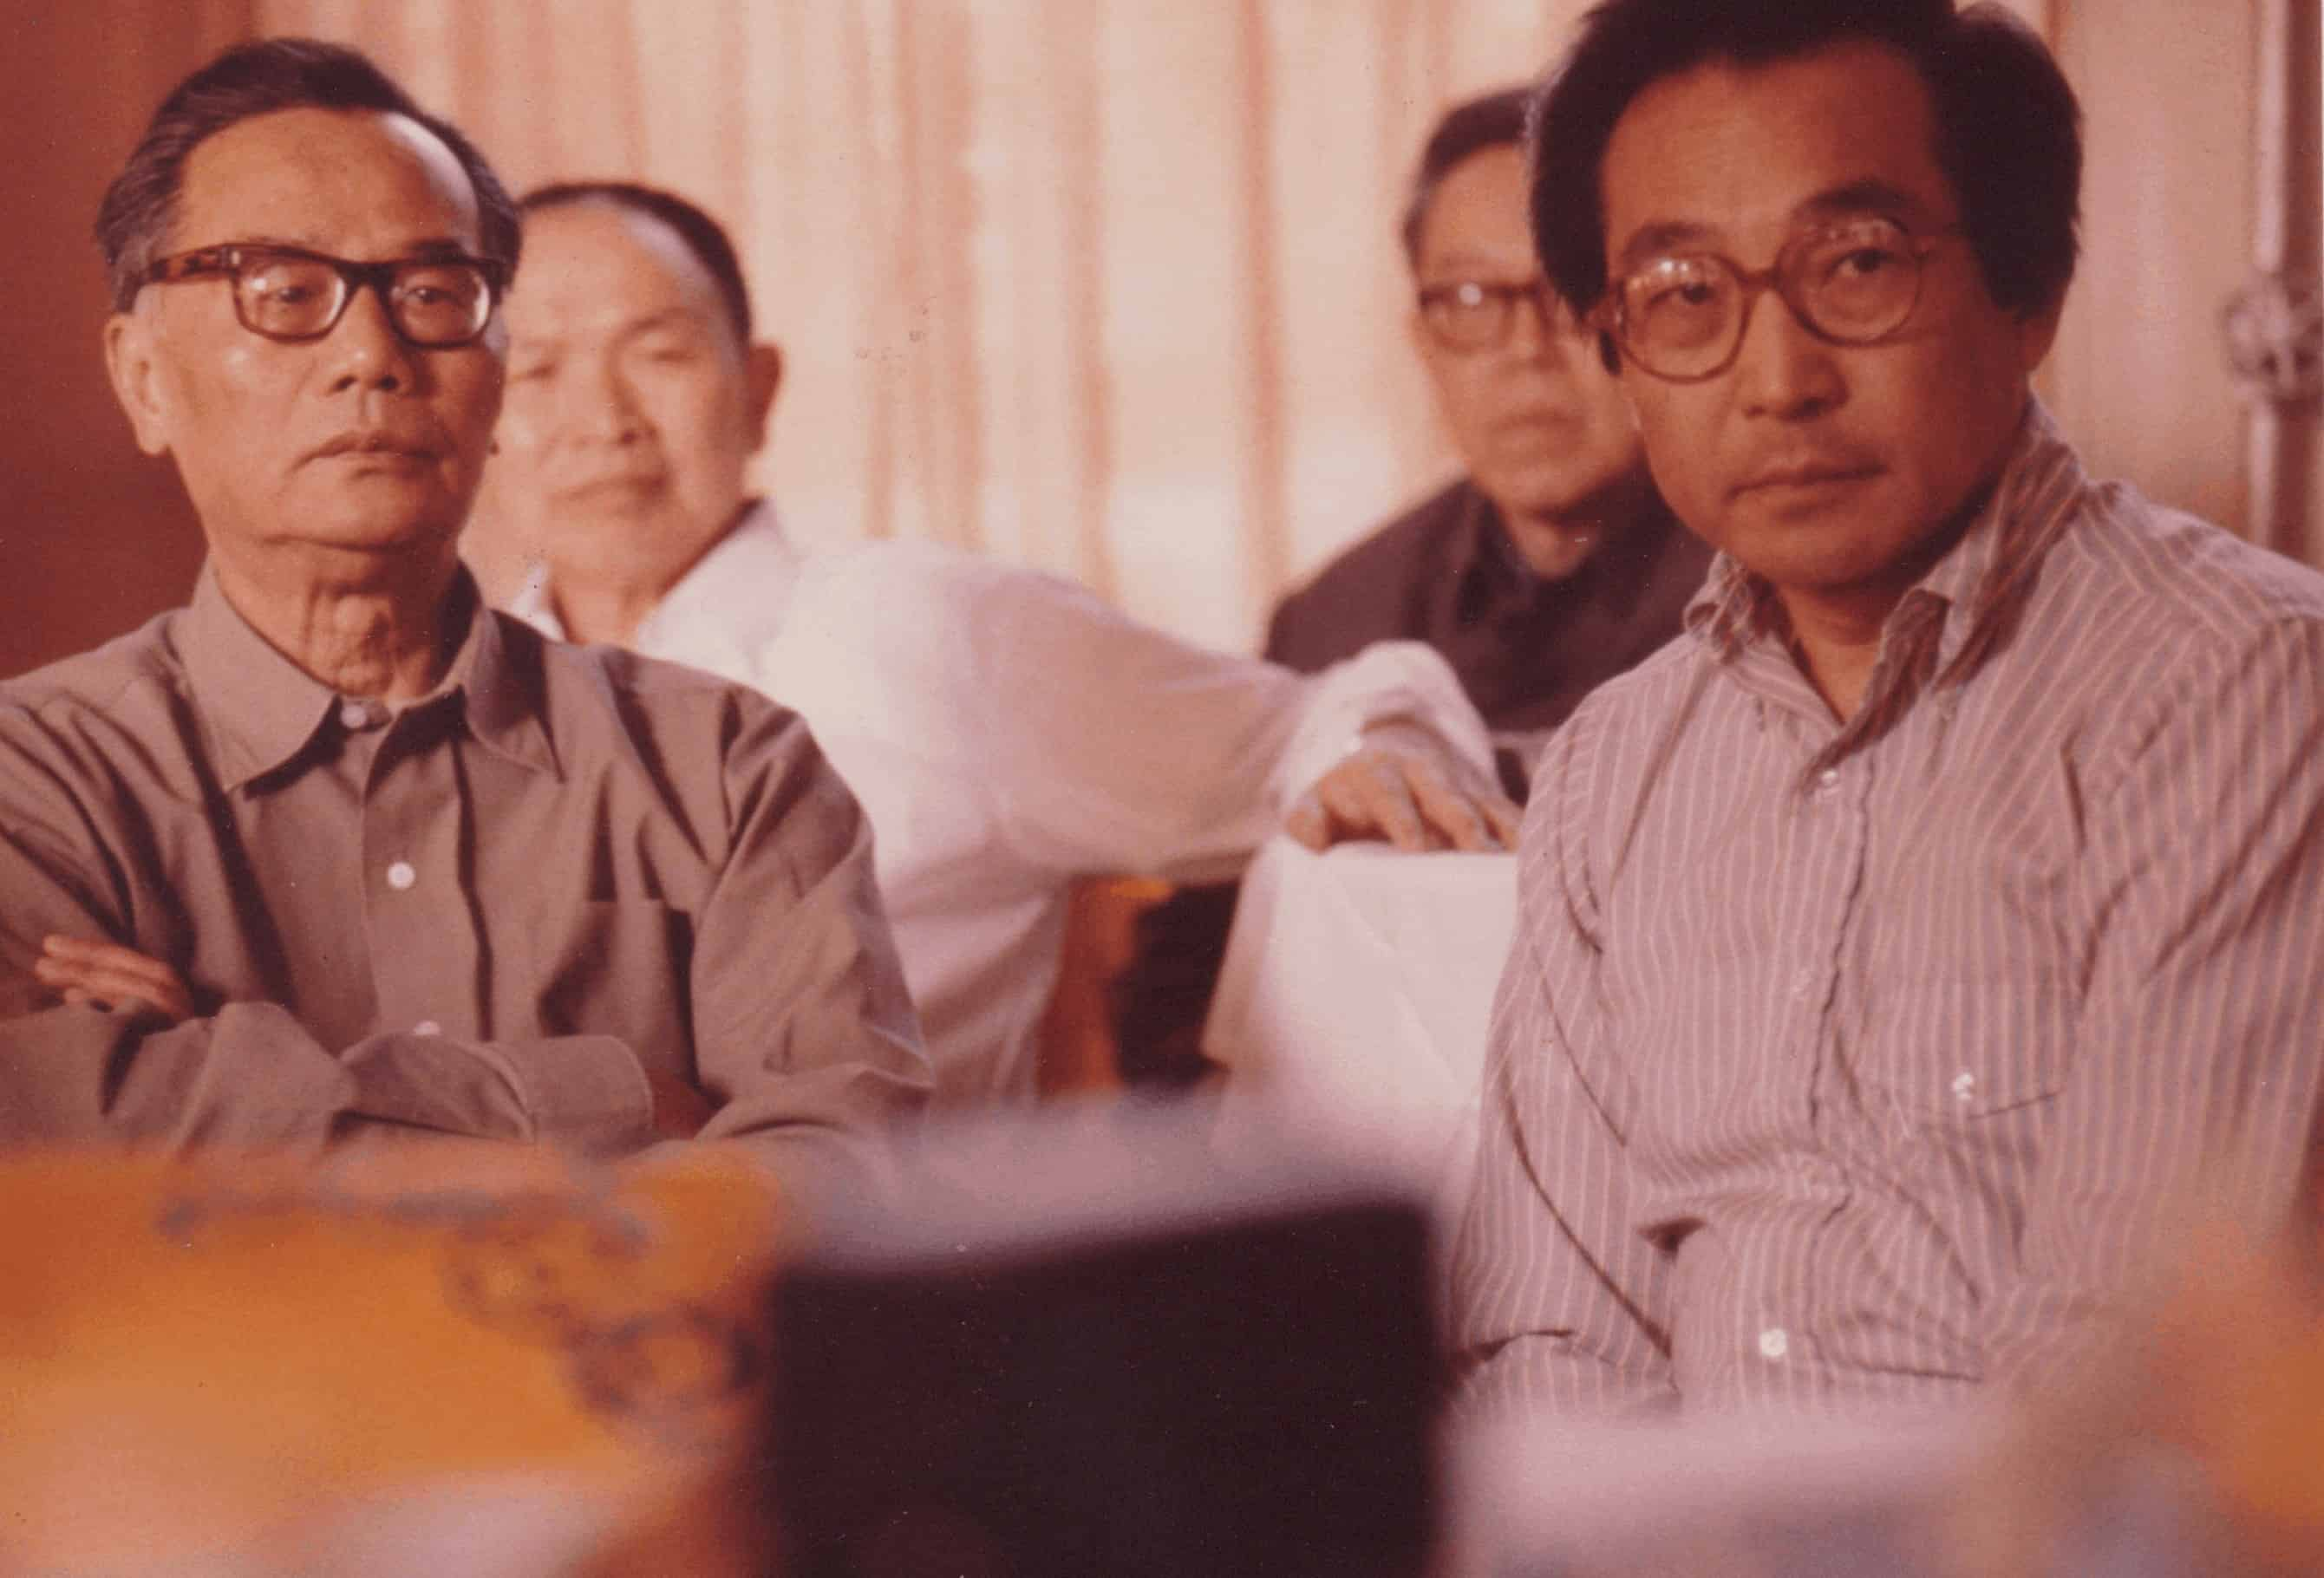 Lin Mohan and Chou Wen-Chung in China